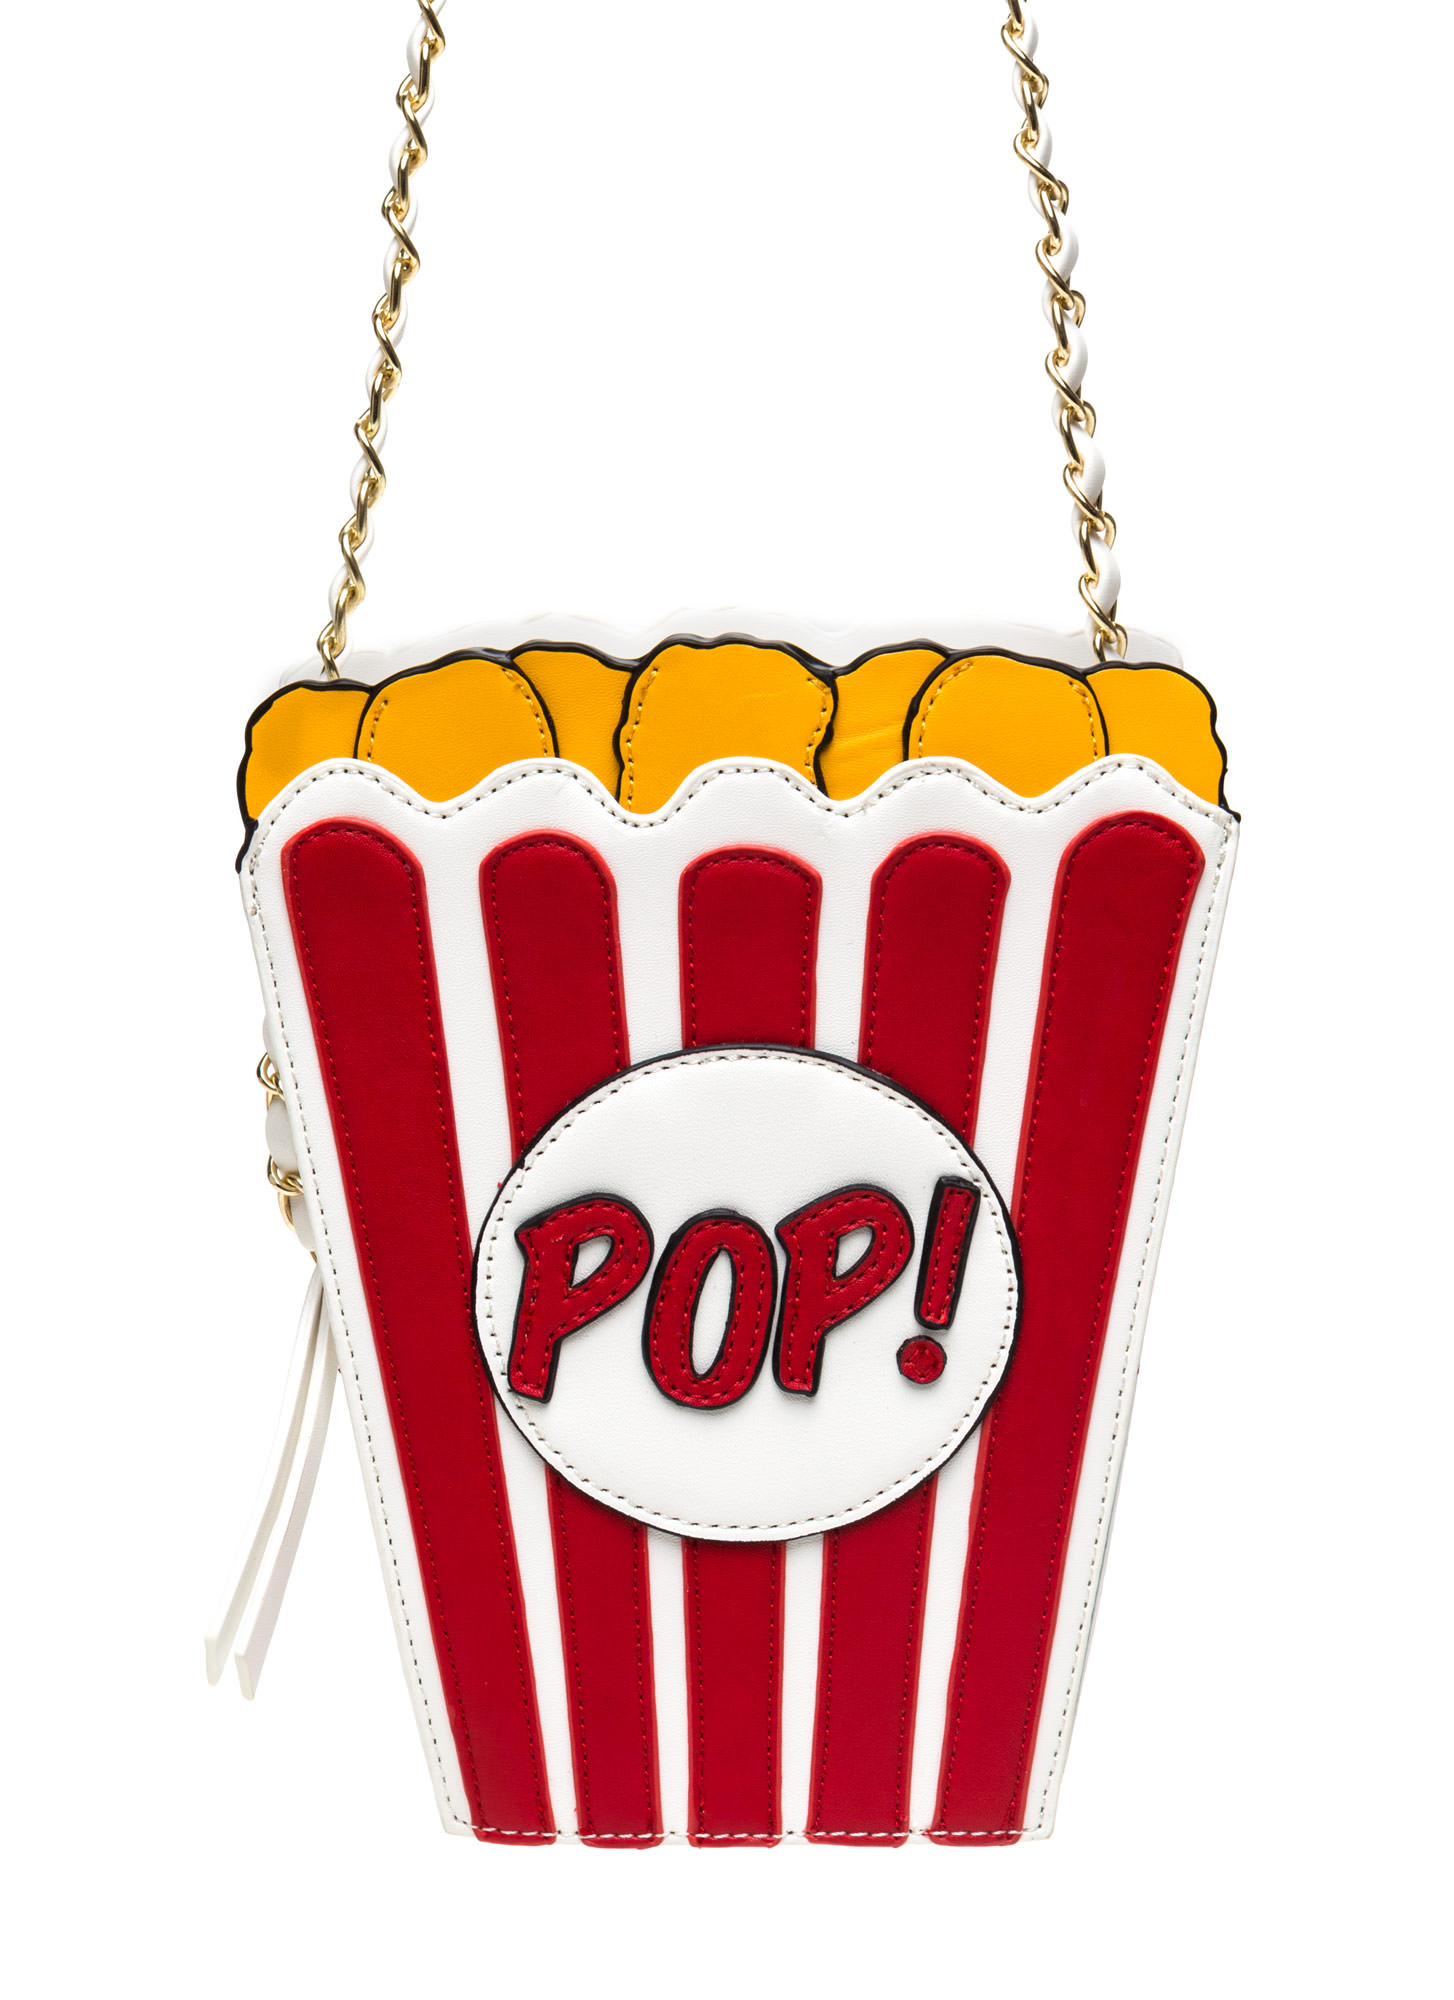 Popcorn Art Faux Leather Clutch REDMULTI